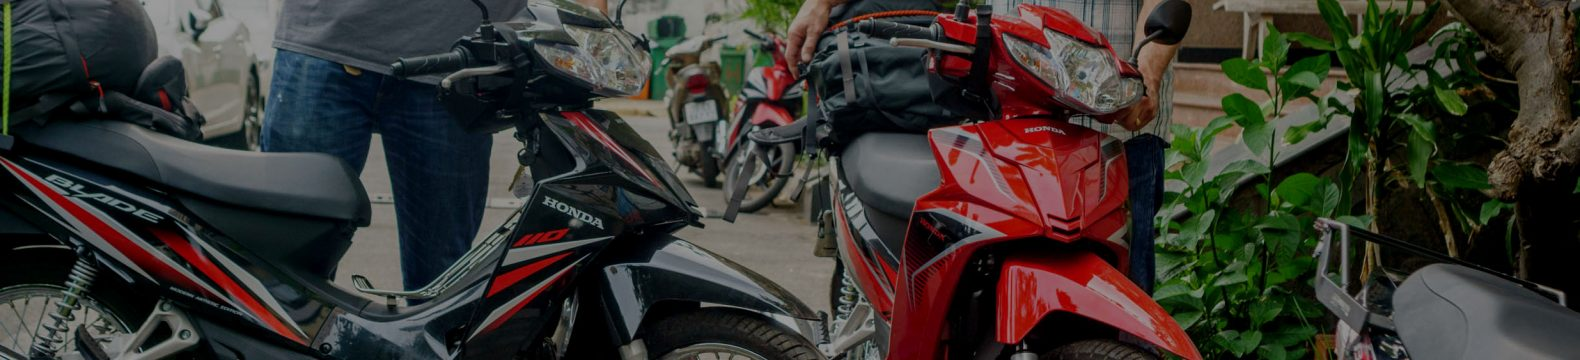 Tour Vietnam With Quality Motorbike Rentals